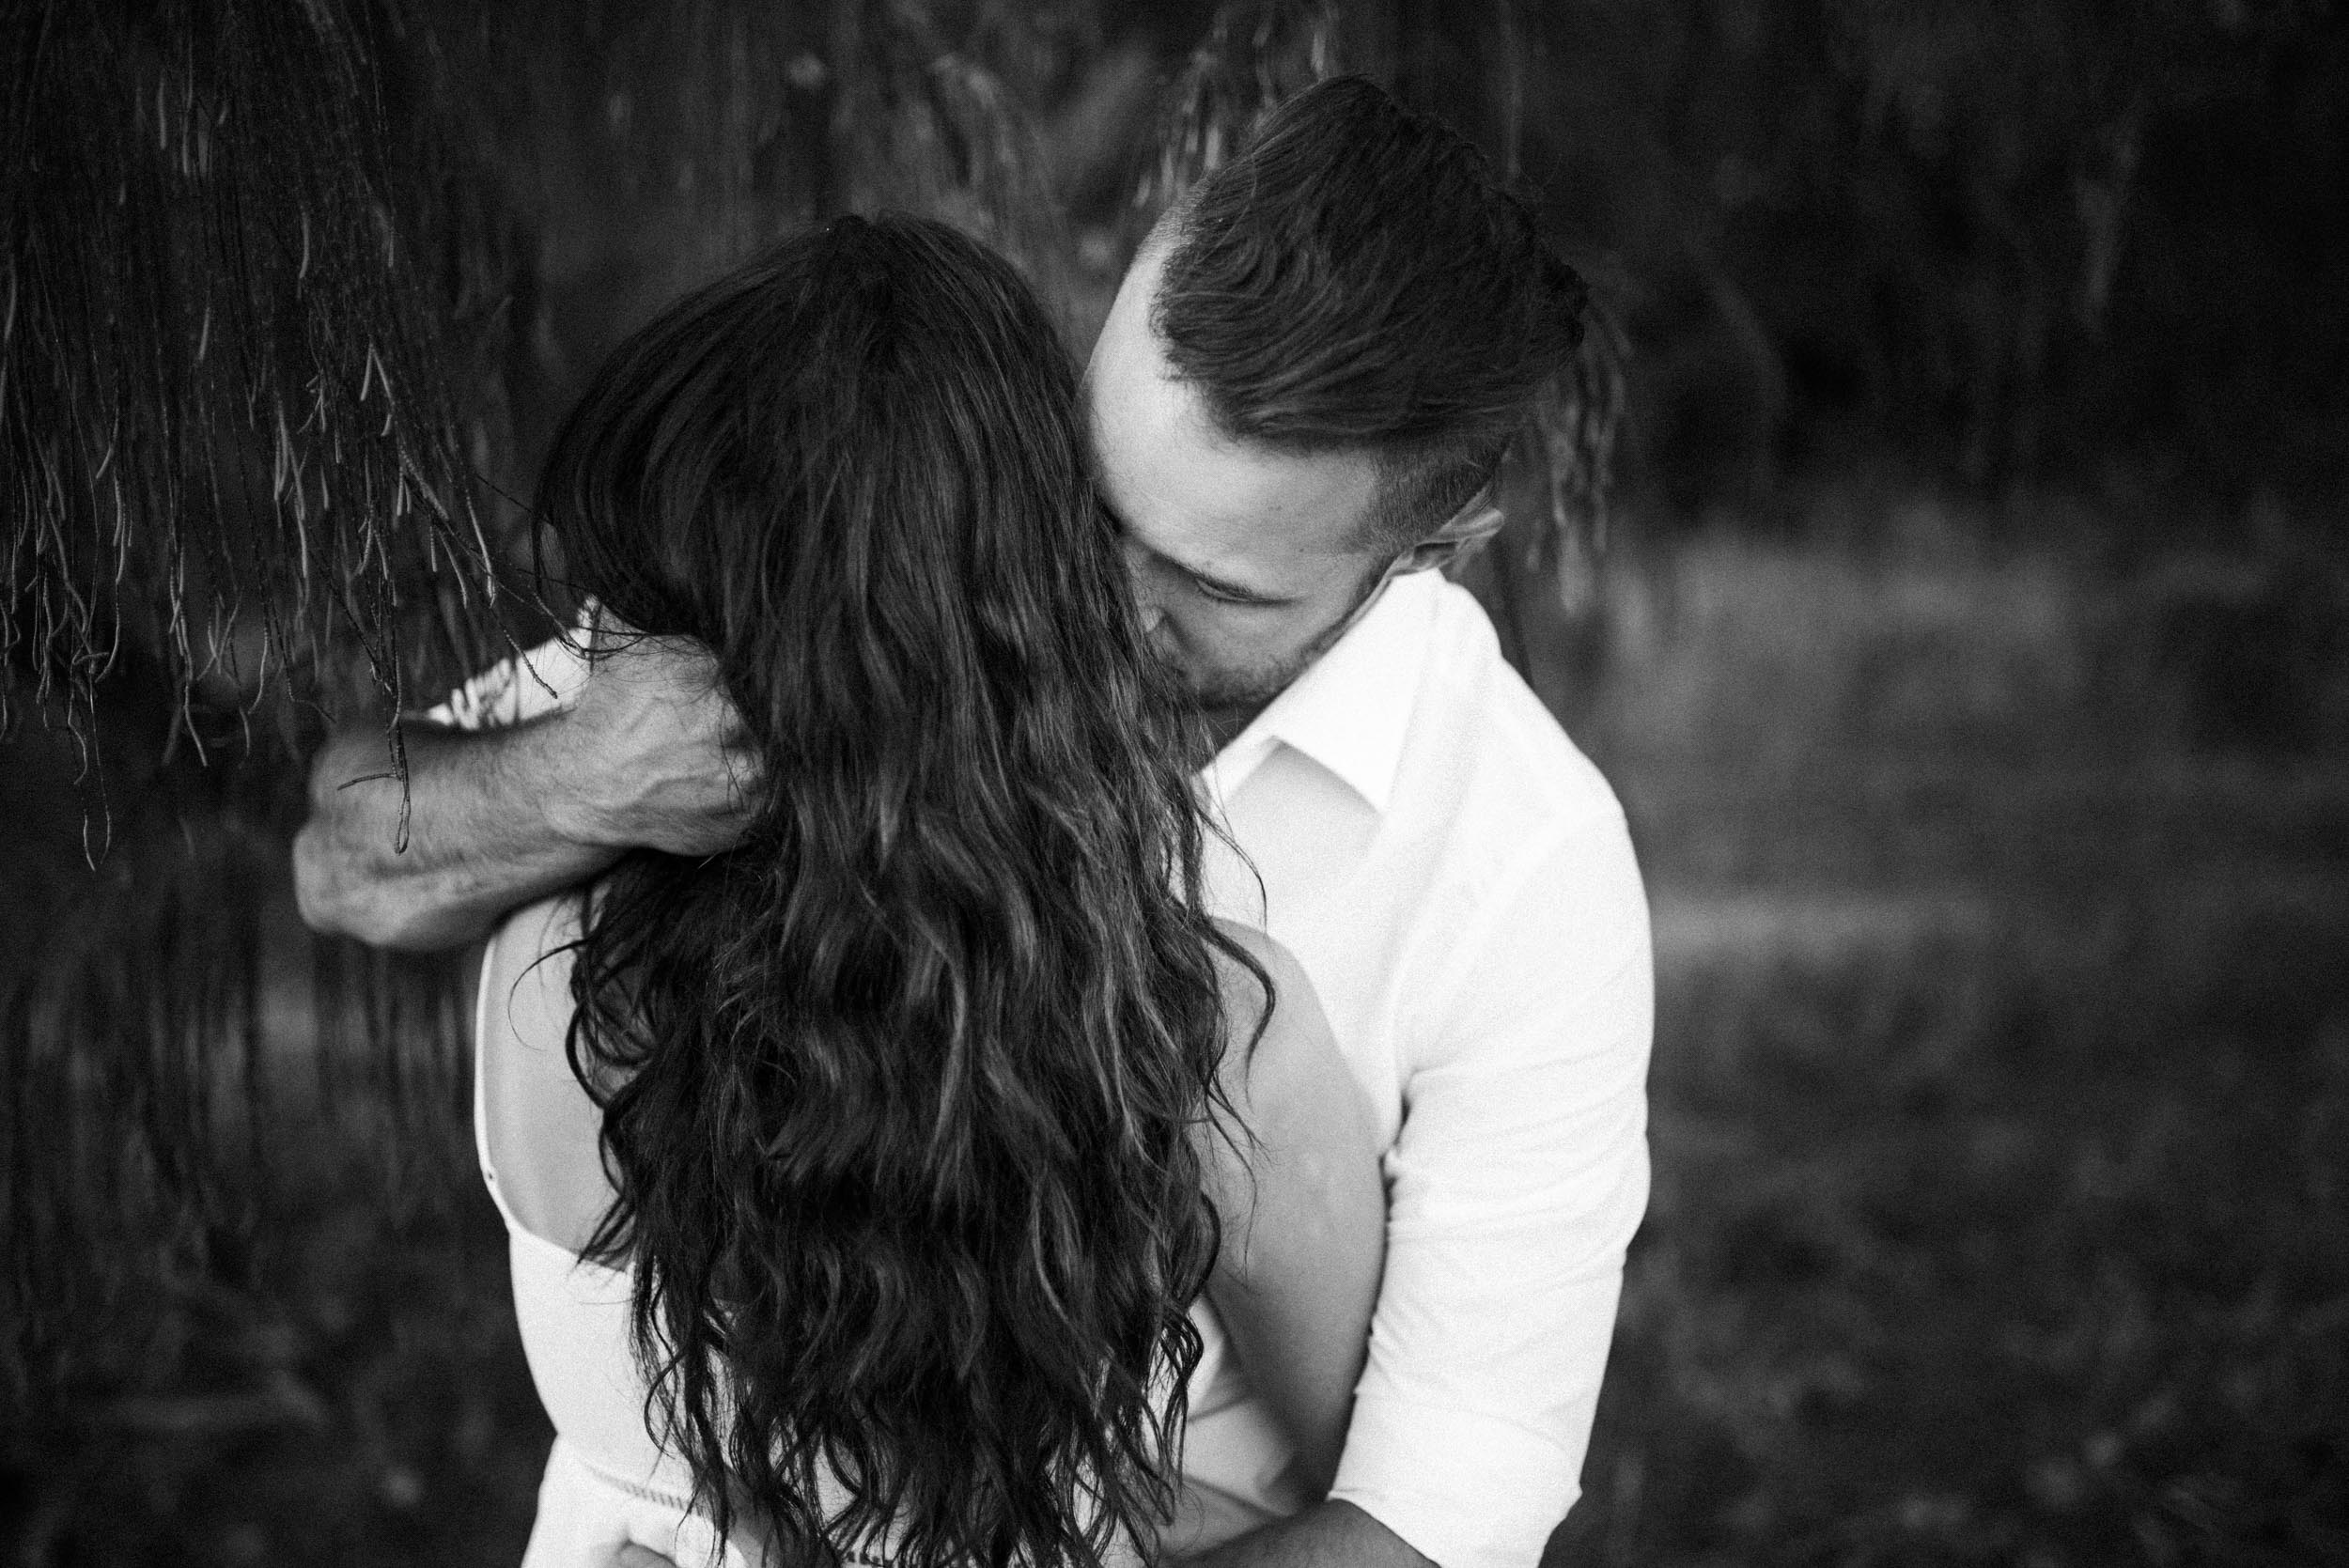 The Raw Photographer - Cairns Wedding Photographer - Engaged Engagement - Beach location - Candid Photography Queensland-24.jpg